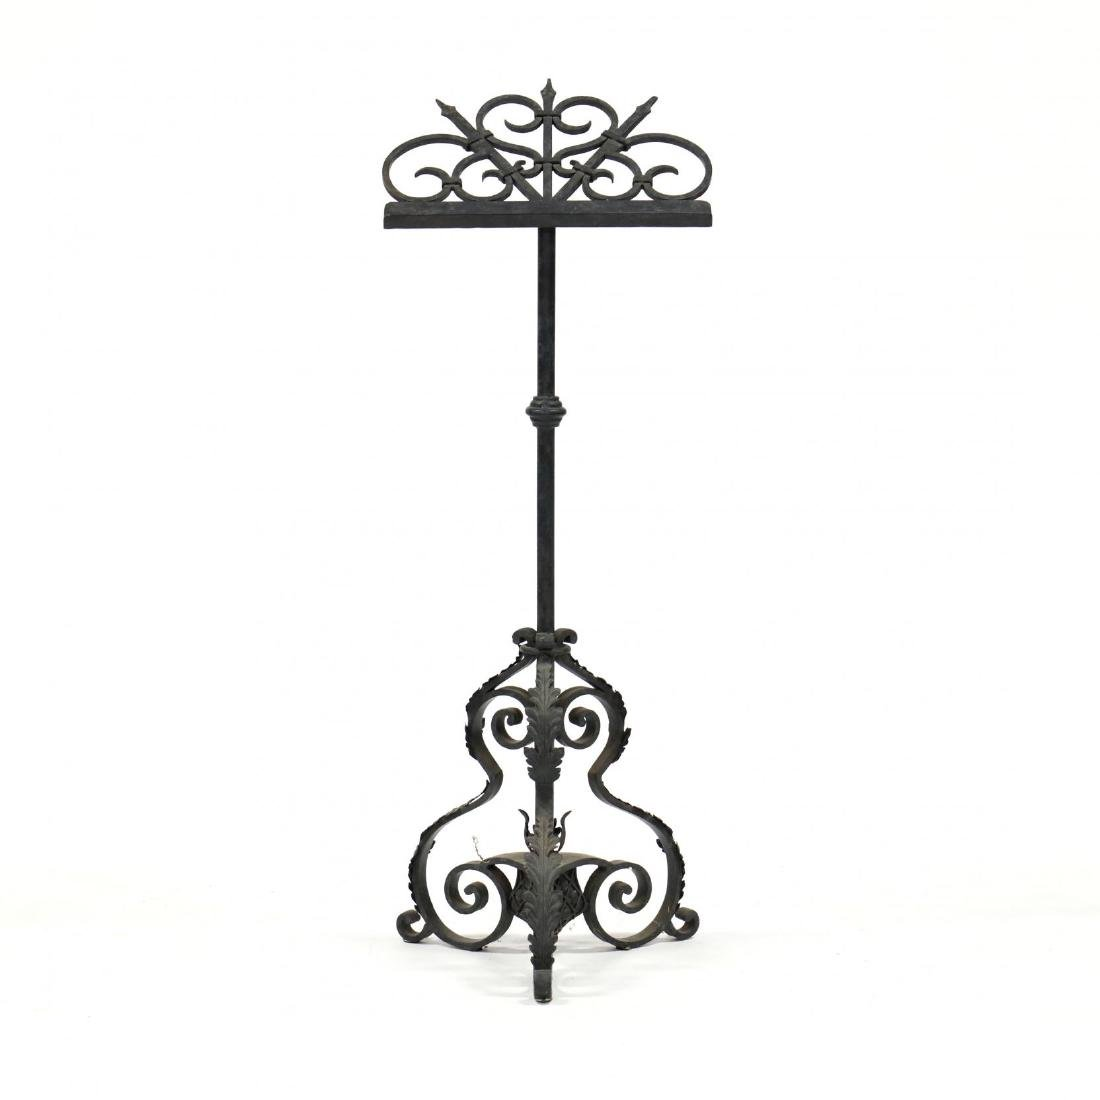 Spanish Classical Wrought Iron Lectern